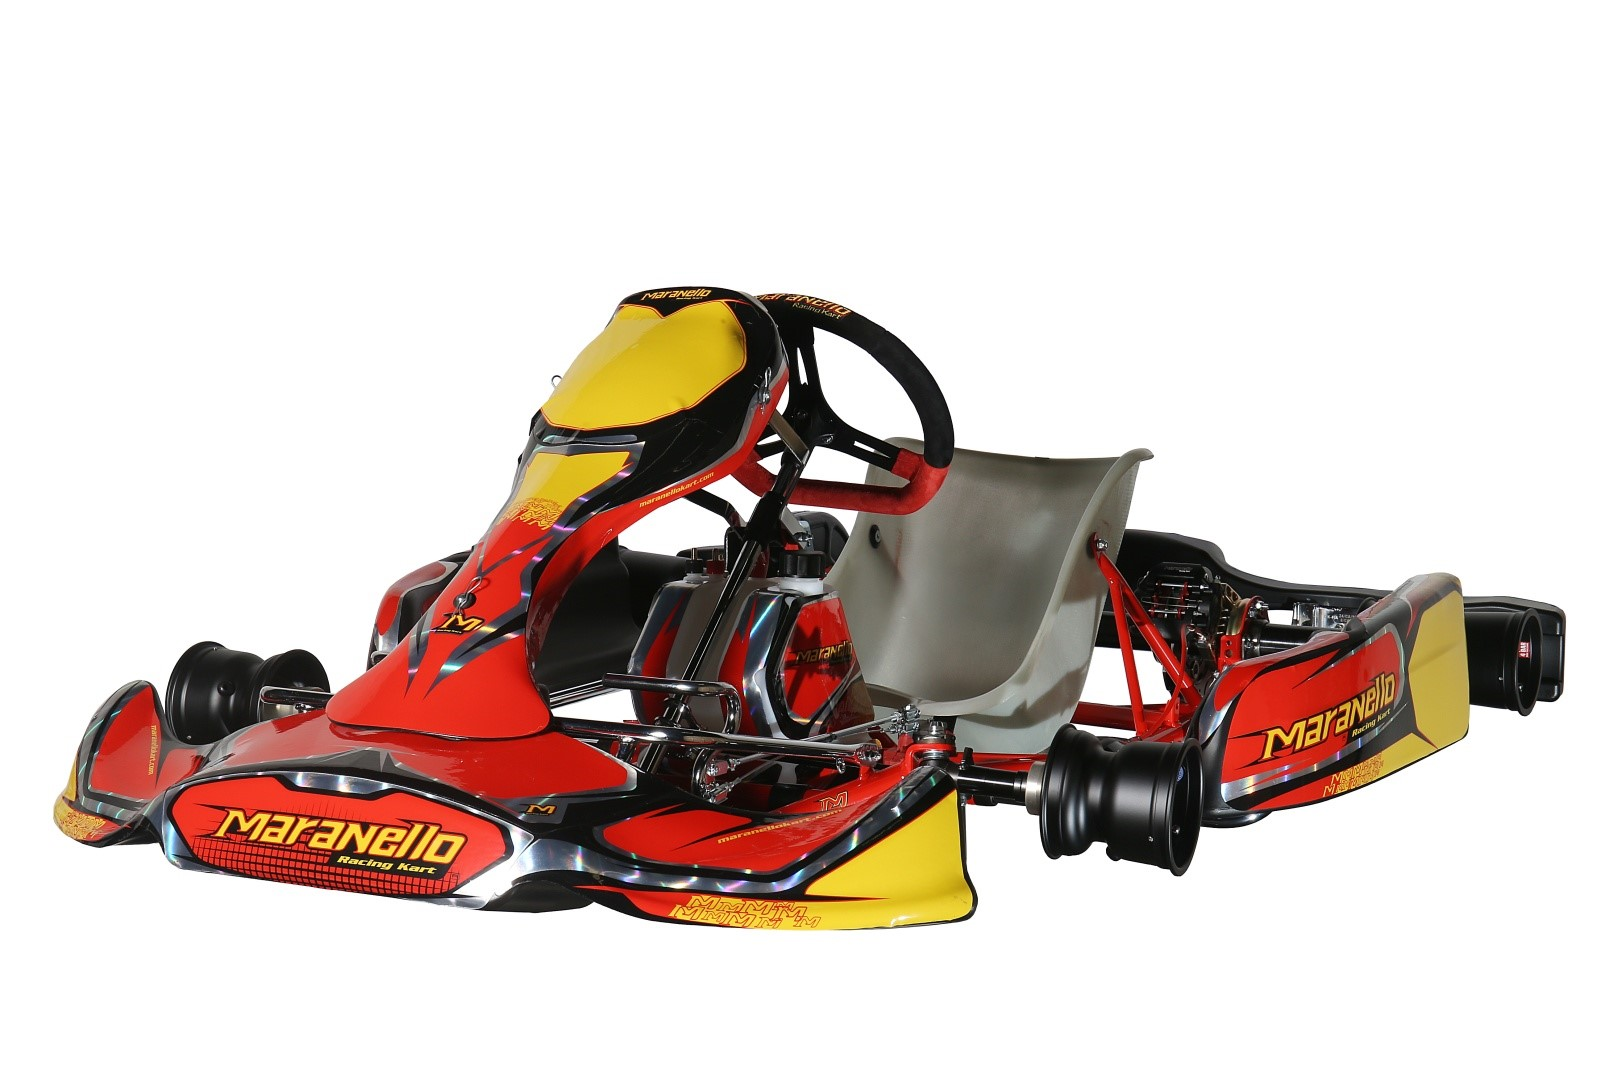 Maranello MK3 30mm Chassis with Rotax Max EVO 125cc engine